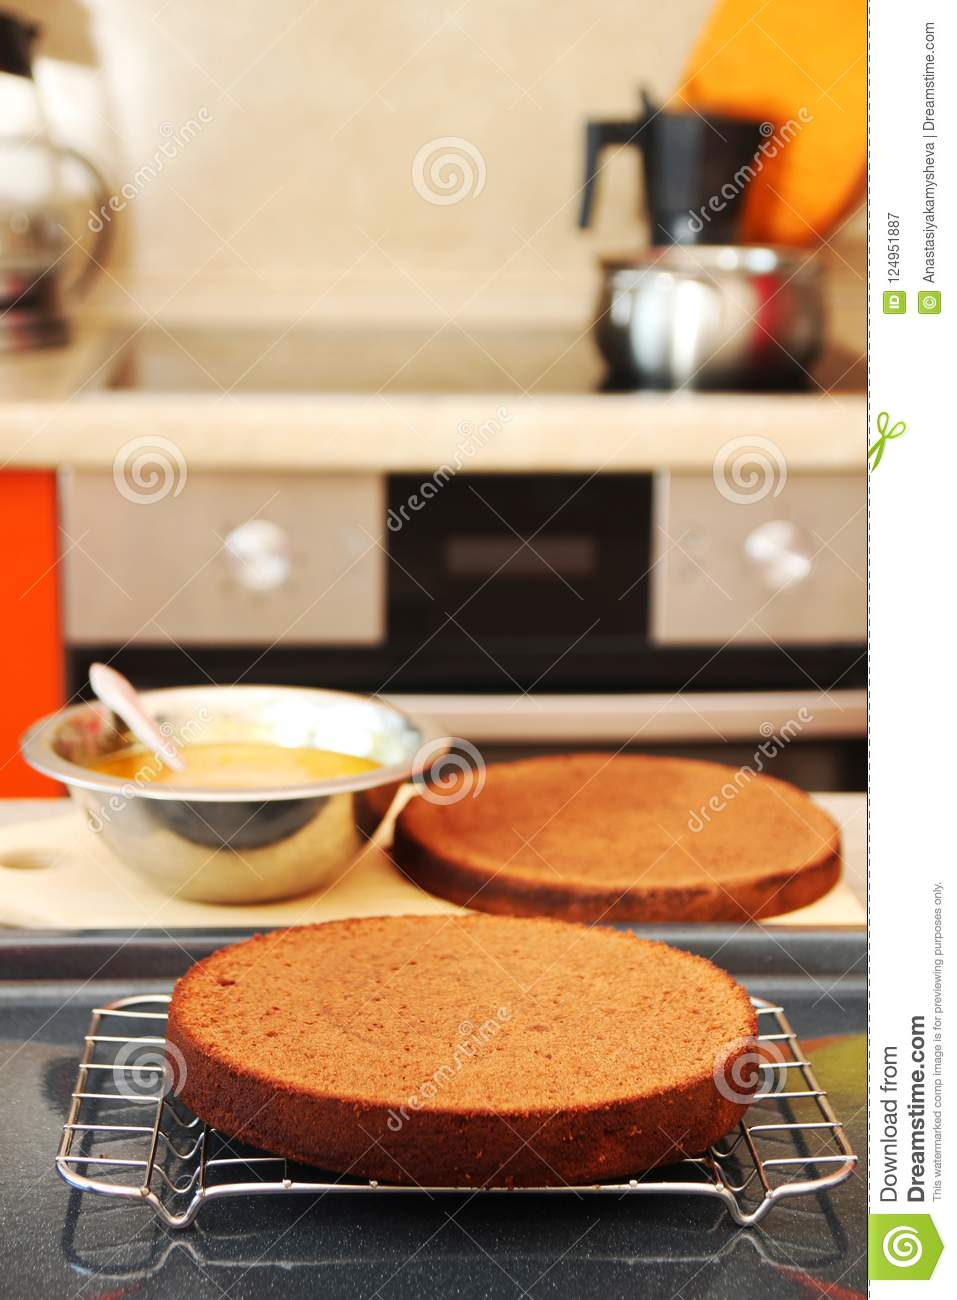 Stage Cuisine A Stage Of Cooking Sacher Torte Stock Image Image Of Cuisine